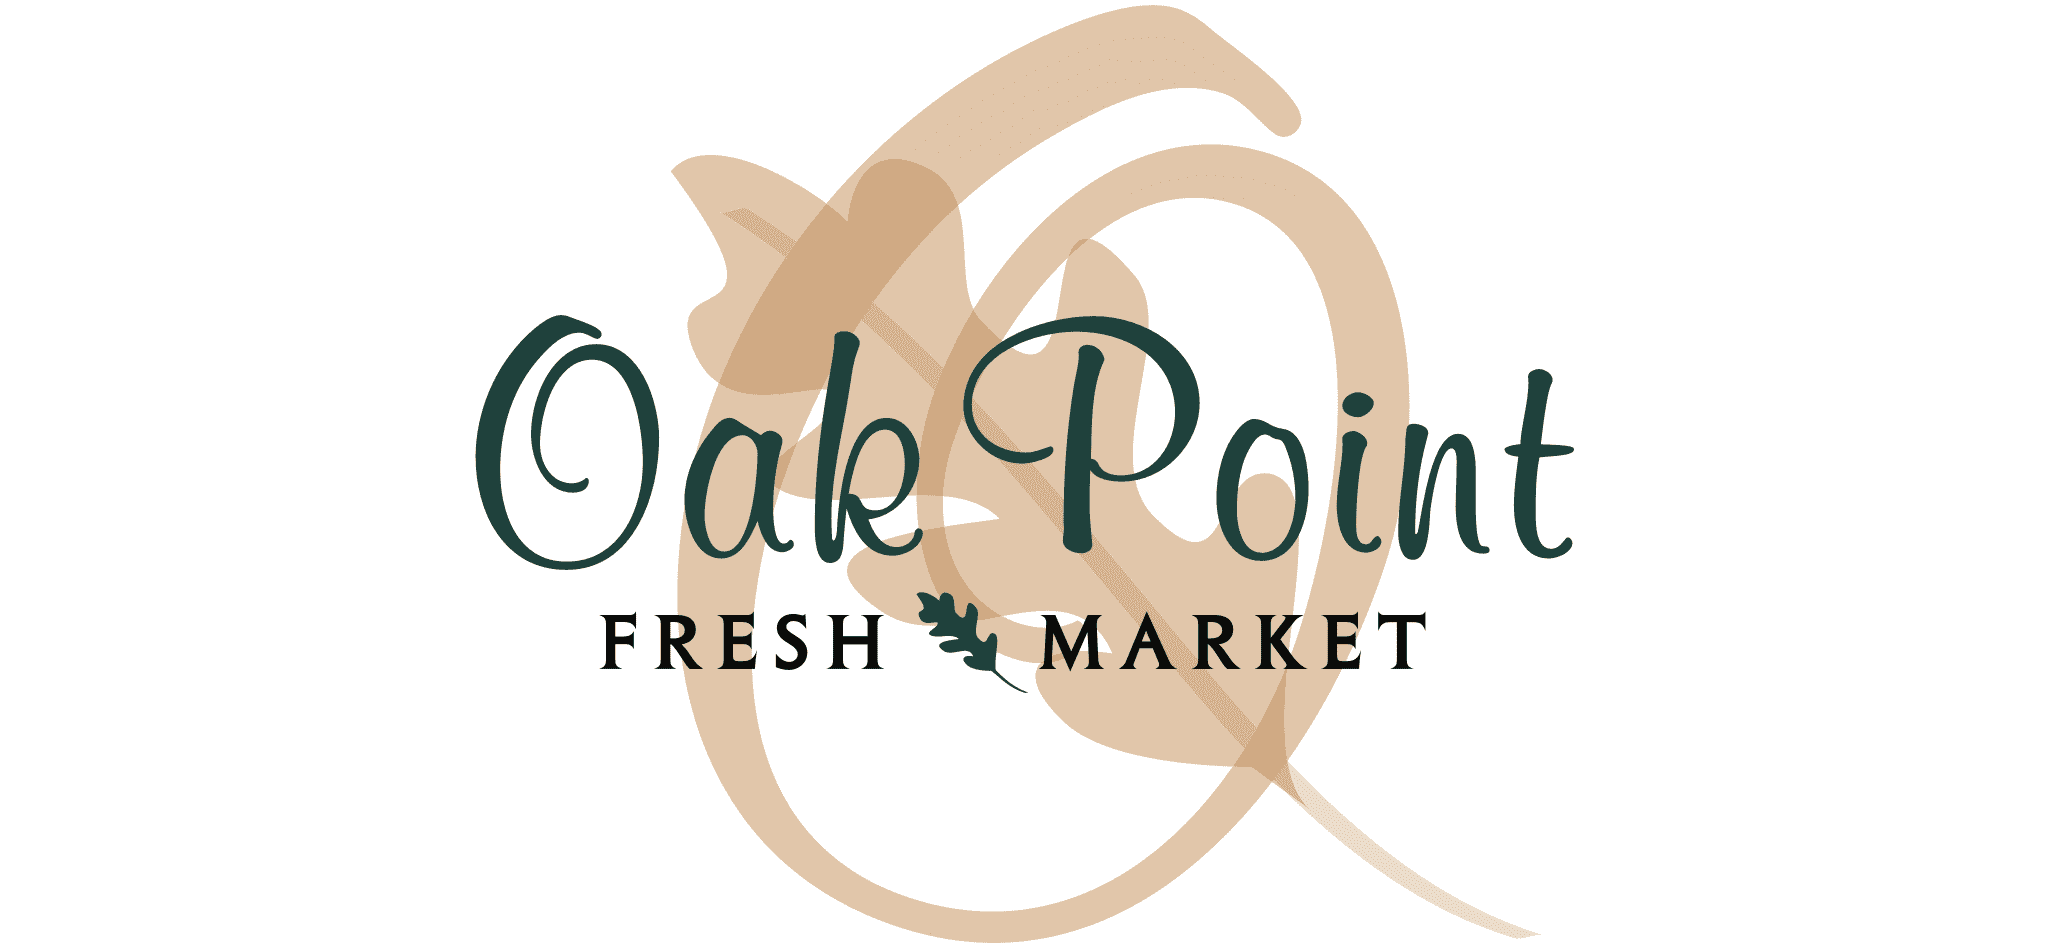 Oak Point Fresh Market | Place an Online Shopping Grocery Order Today!